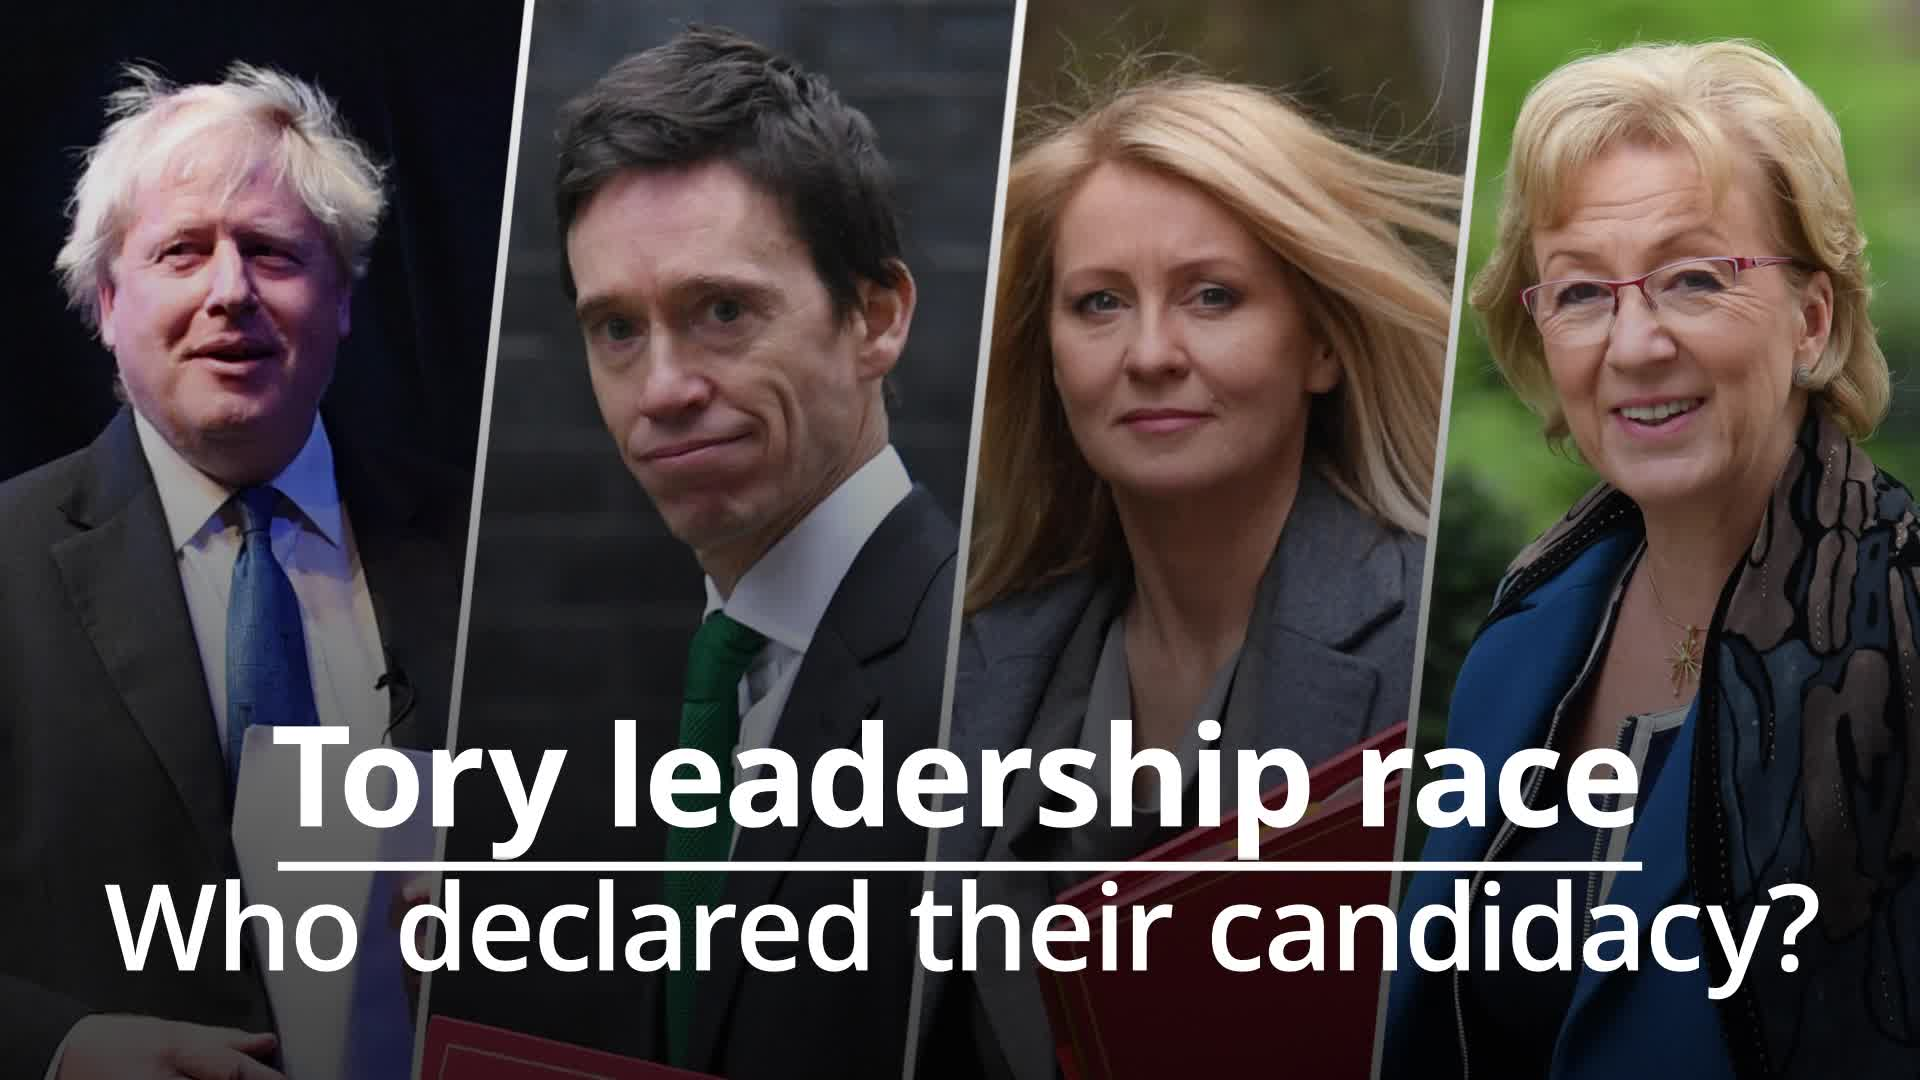 Tory Leadership Race: Esther McVey Vows To Cut Foreign Aid To Fund Police And Schools